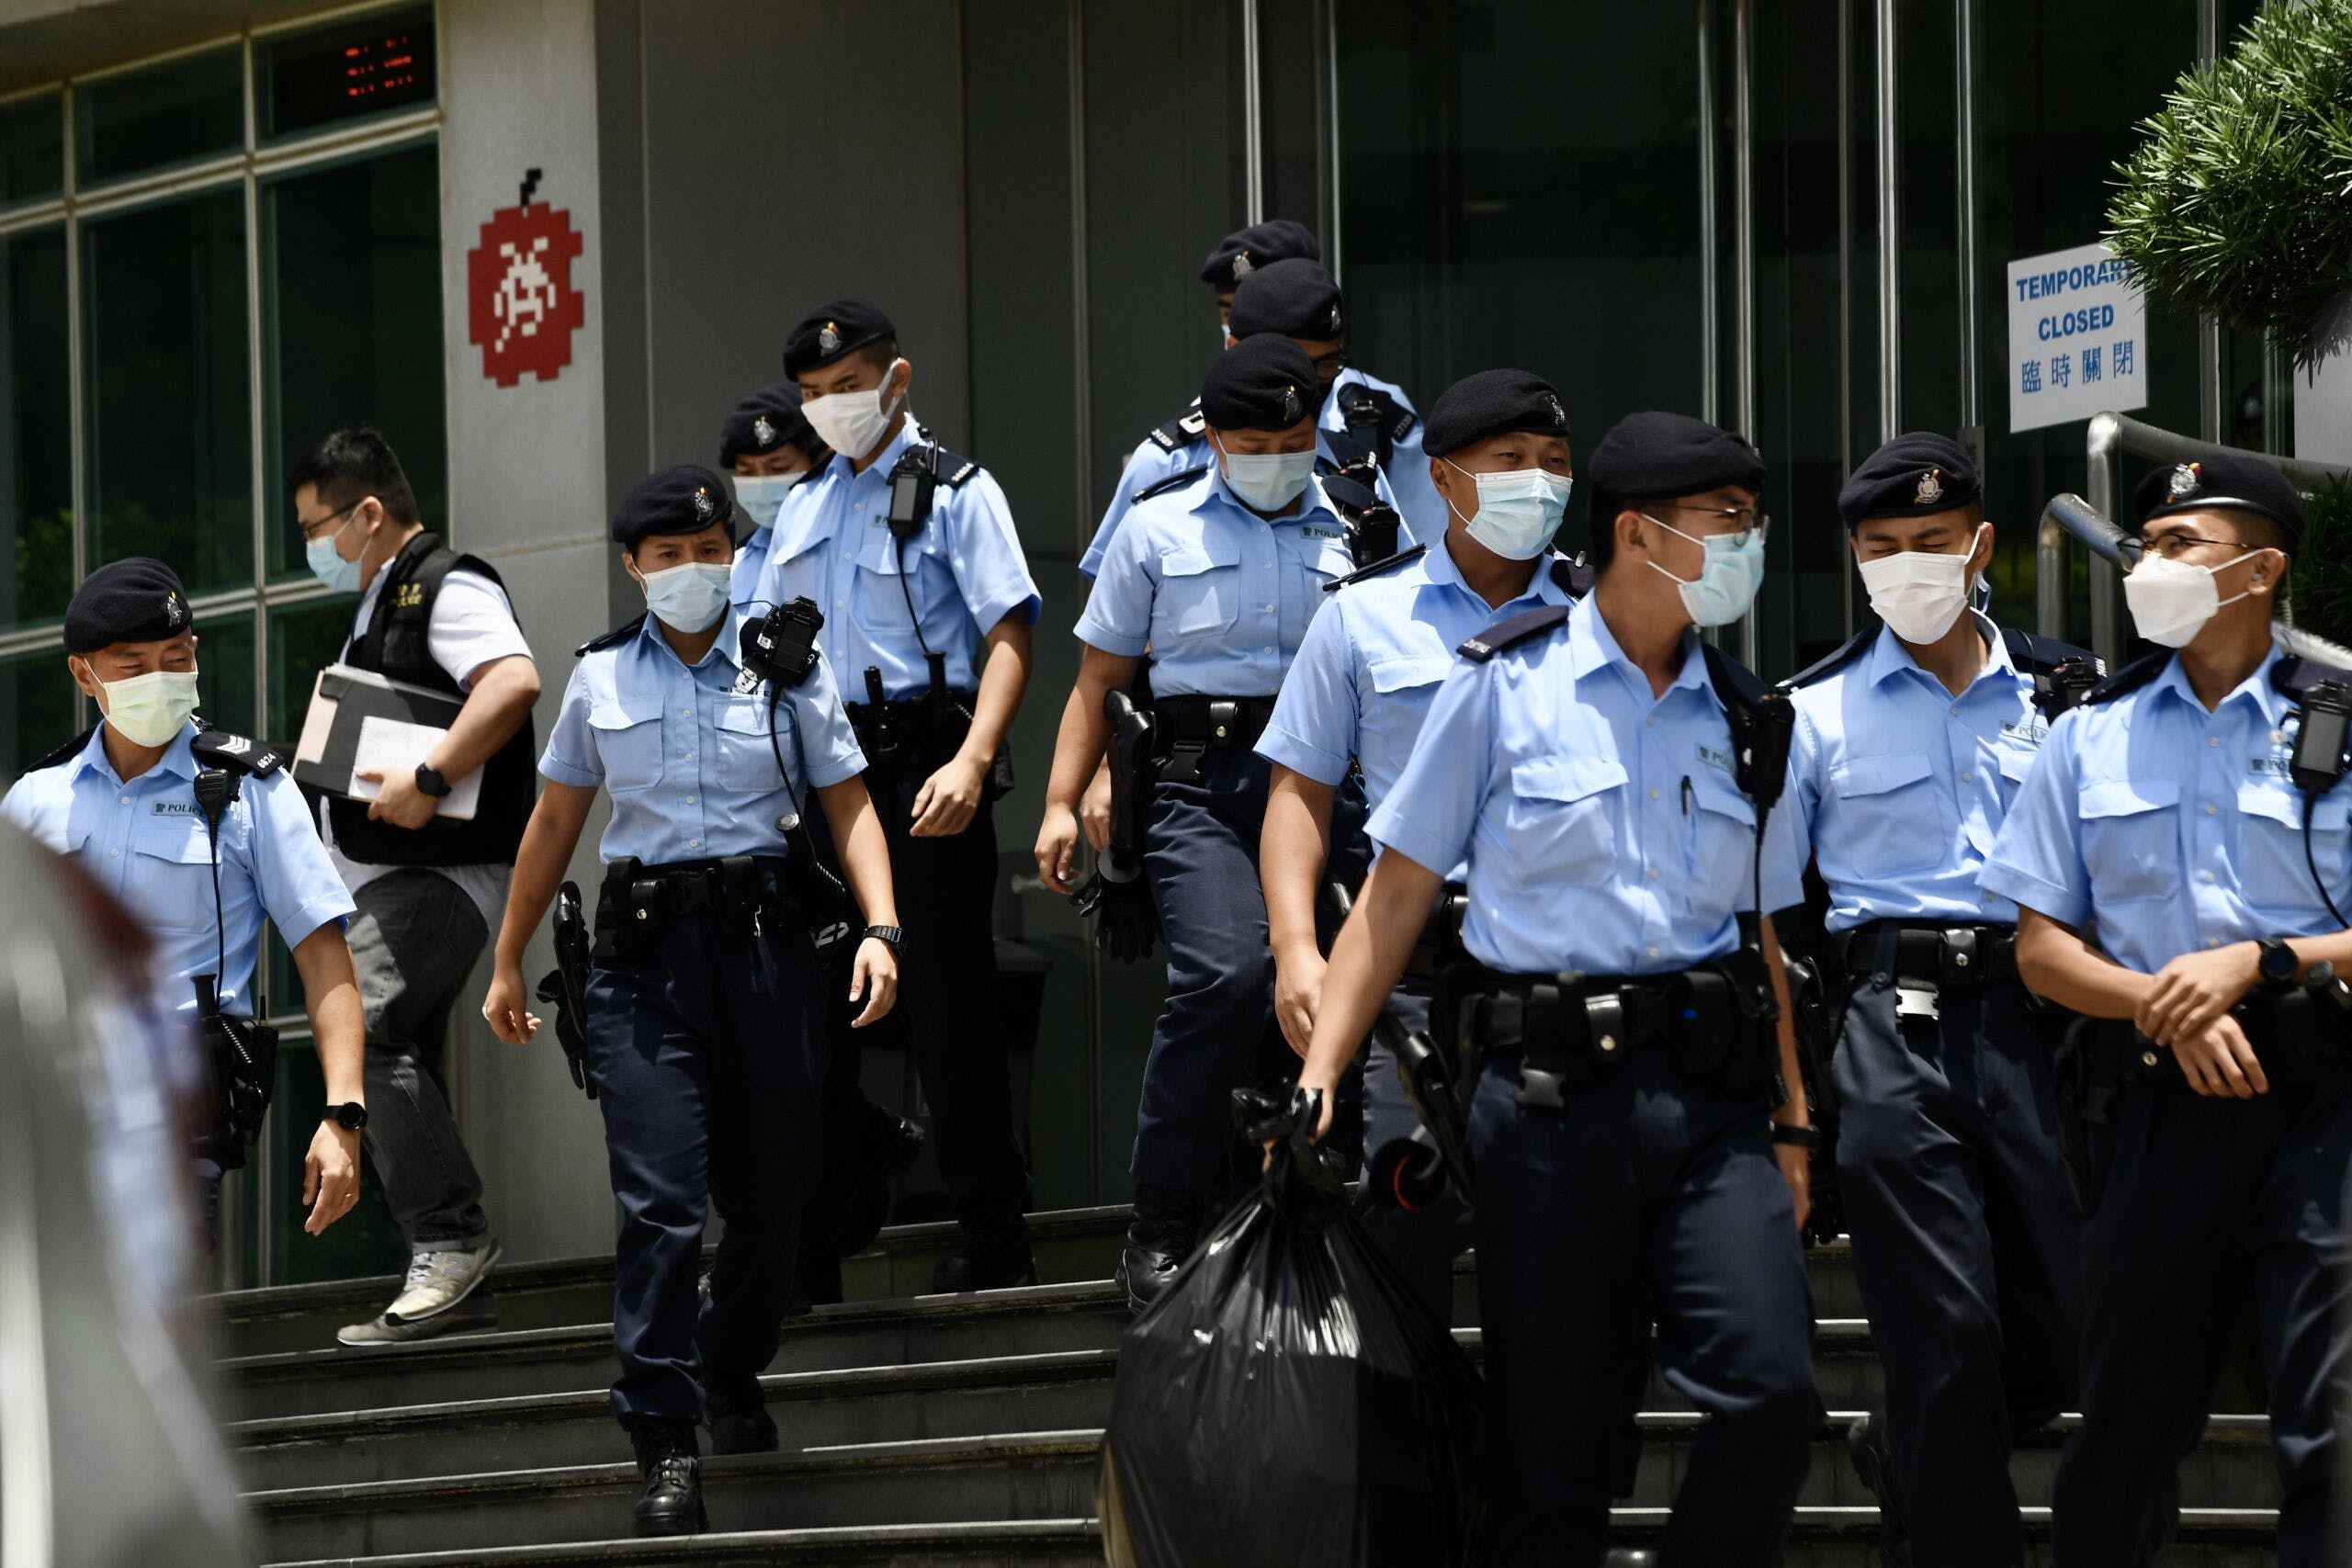 Chinese National Security Act restricts Hong Kong